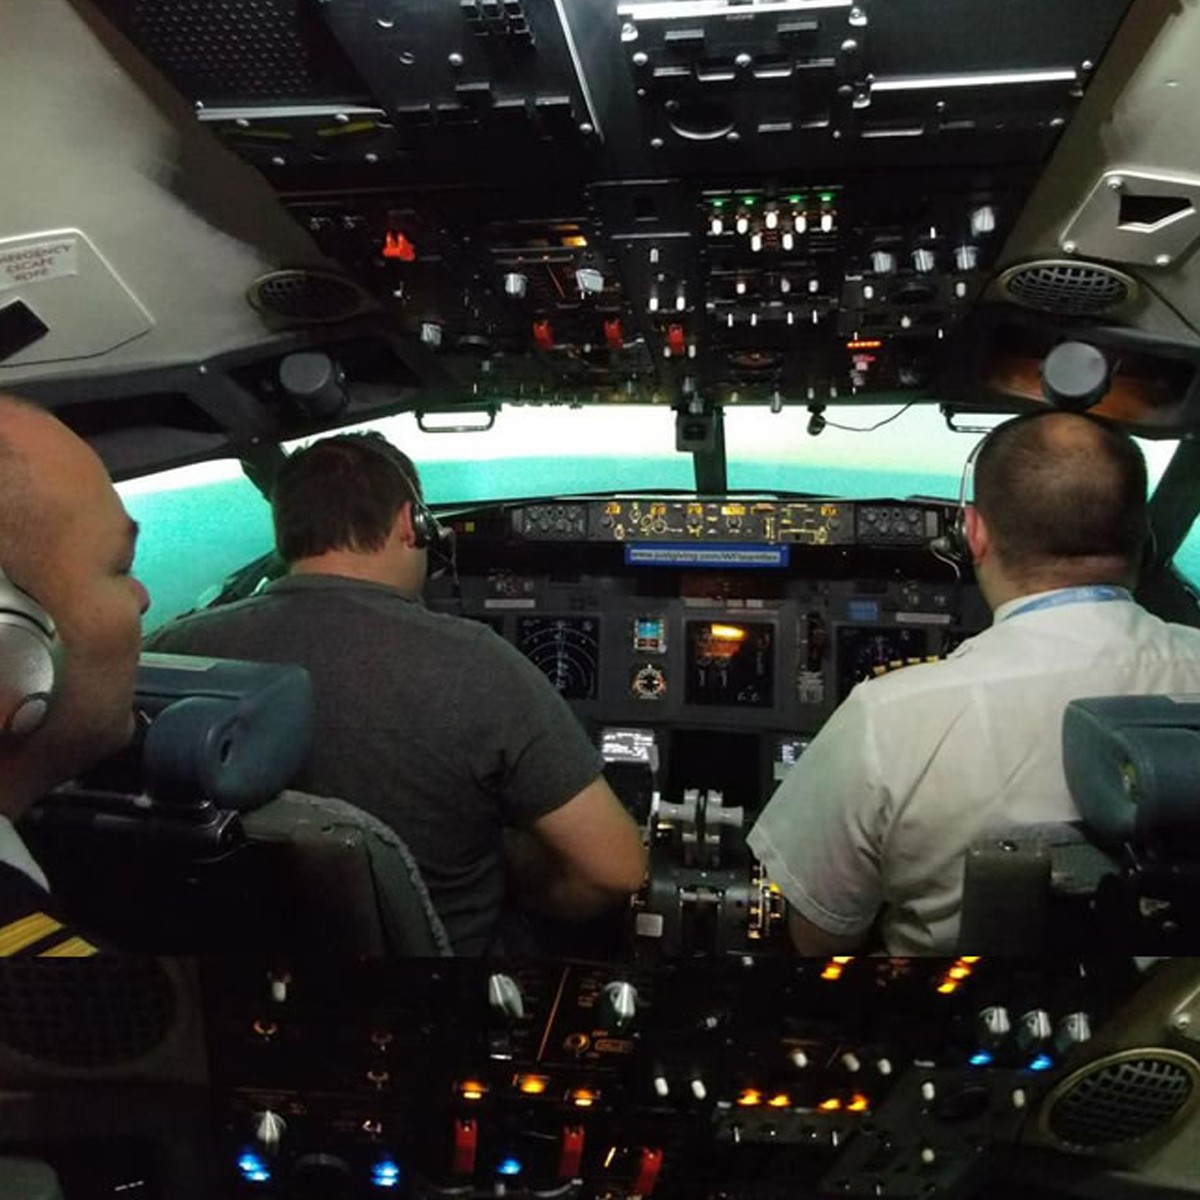 Boeing 737 Flight Simulator Experiences  A unique gift experience